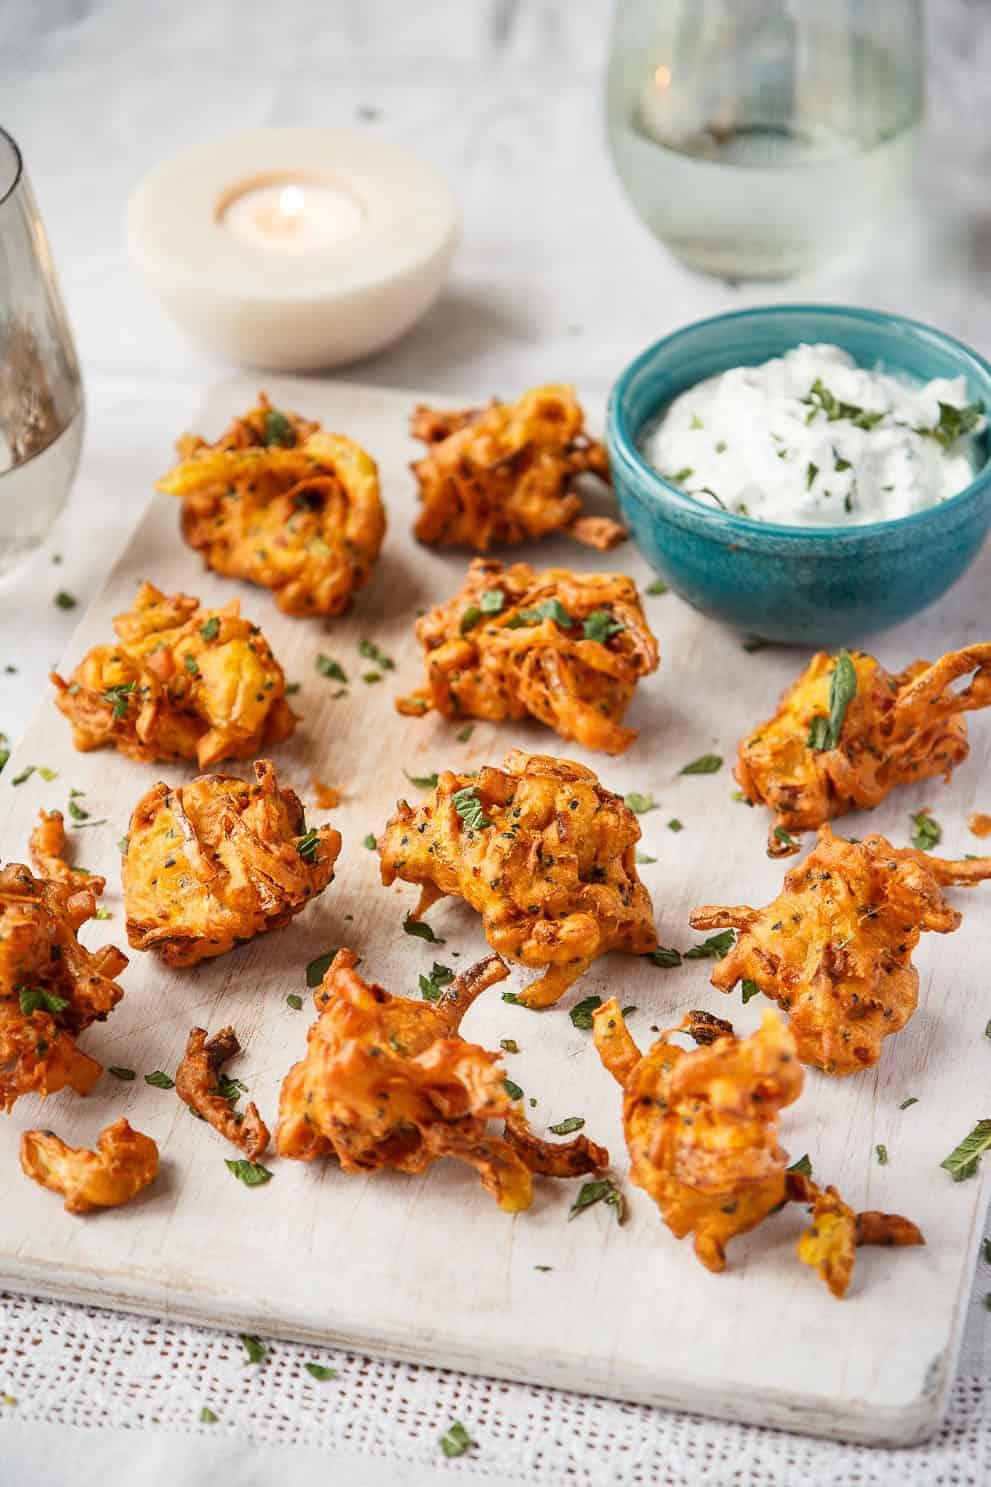 Vegan shallot bhajis with minted yogurt on a white board - UK shallots